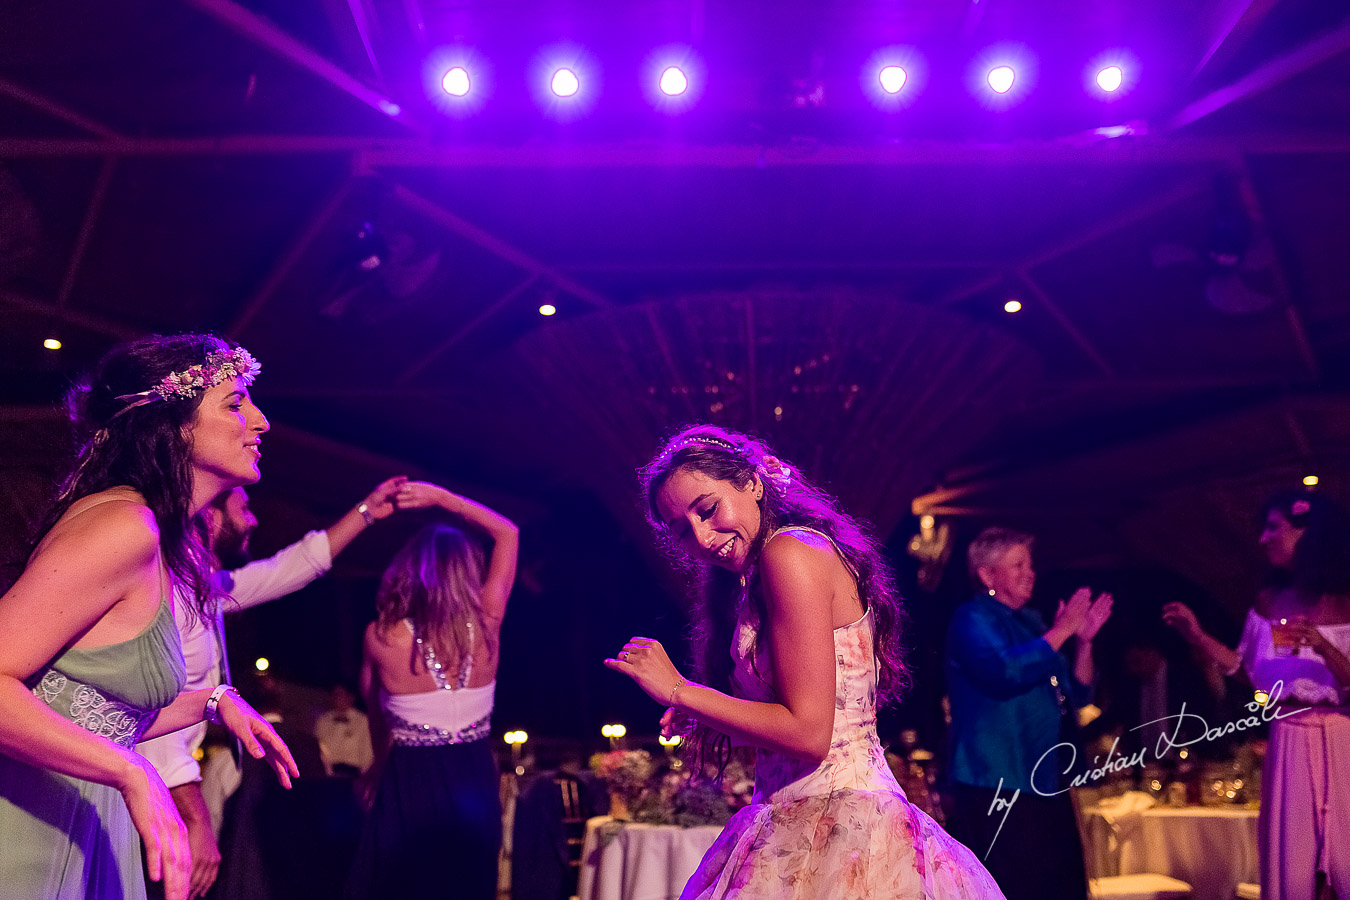 Bride dancing at her wedding, a unique moment photographed as part of an Exclusive Wedding photography at Grand Resort Limassol, captured by Cyprus Wedding Photographer Cristian Dascalu.